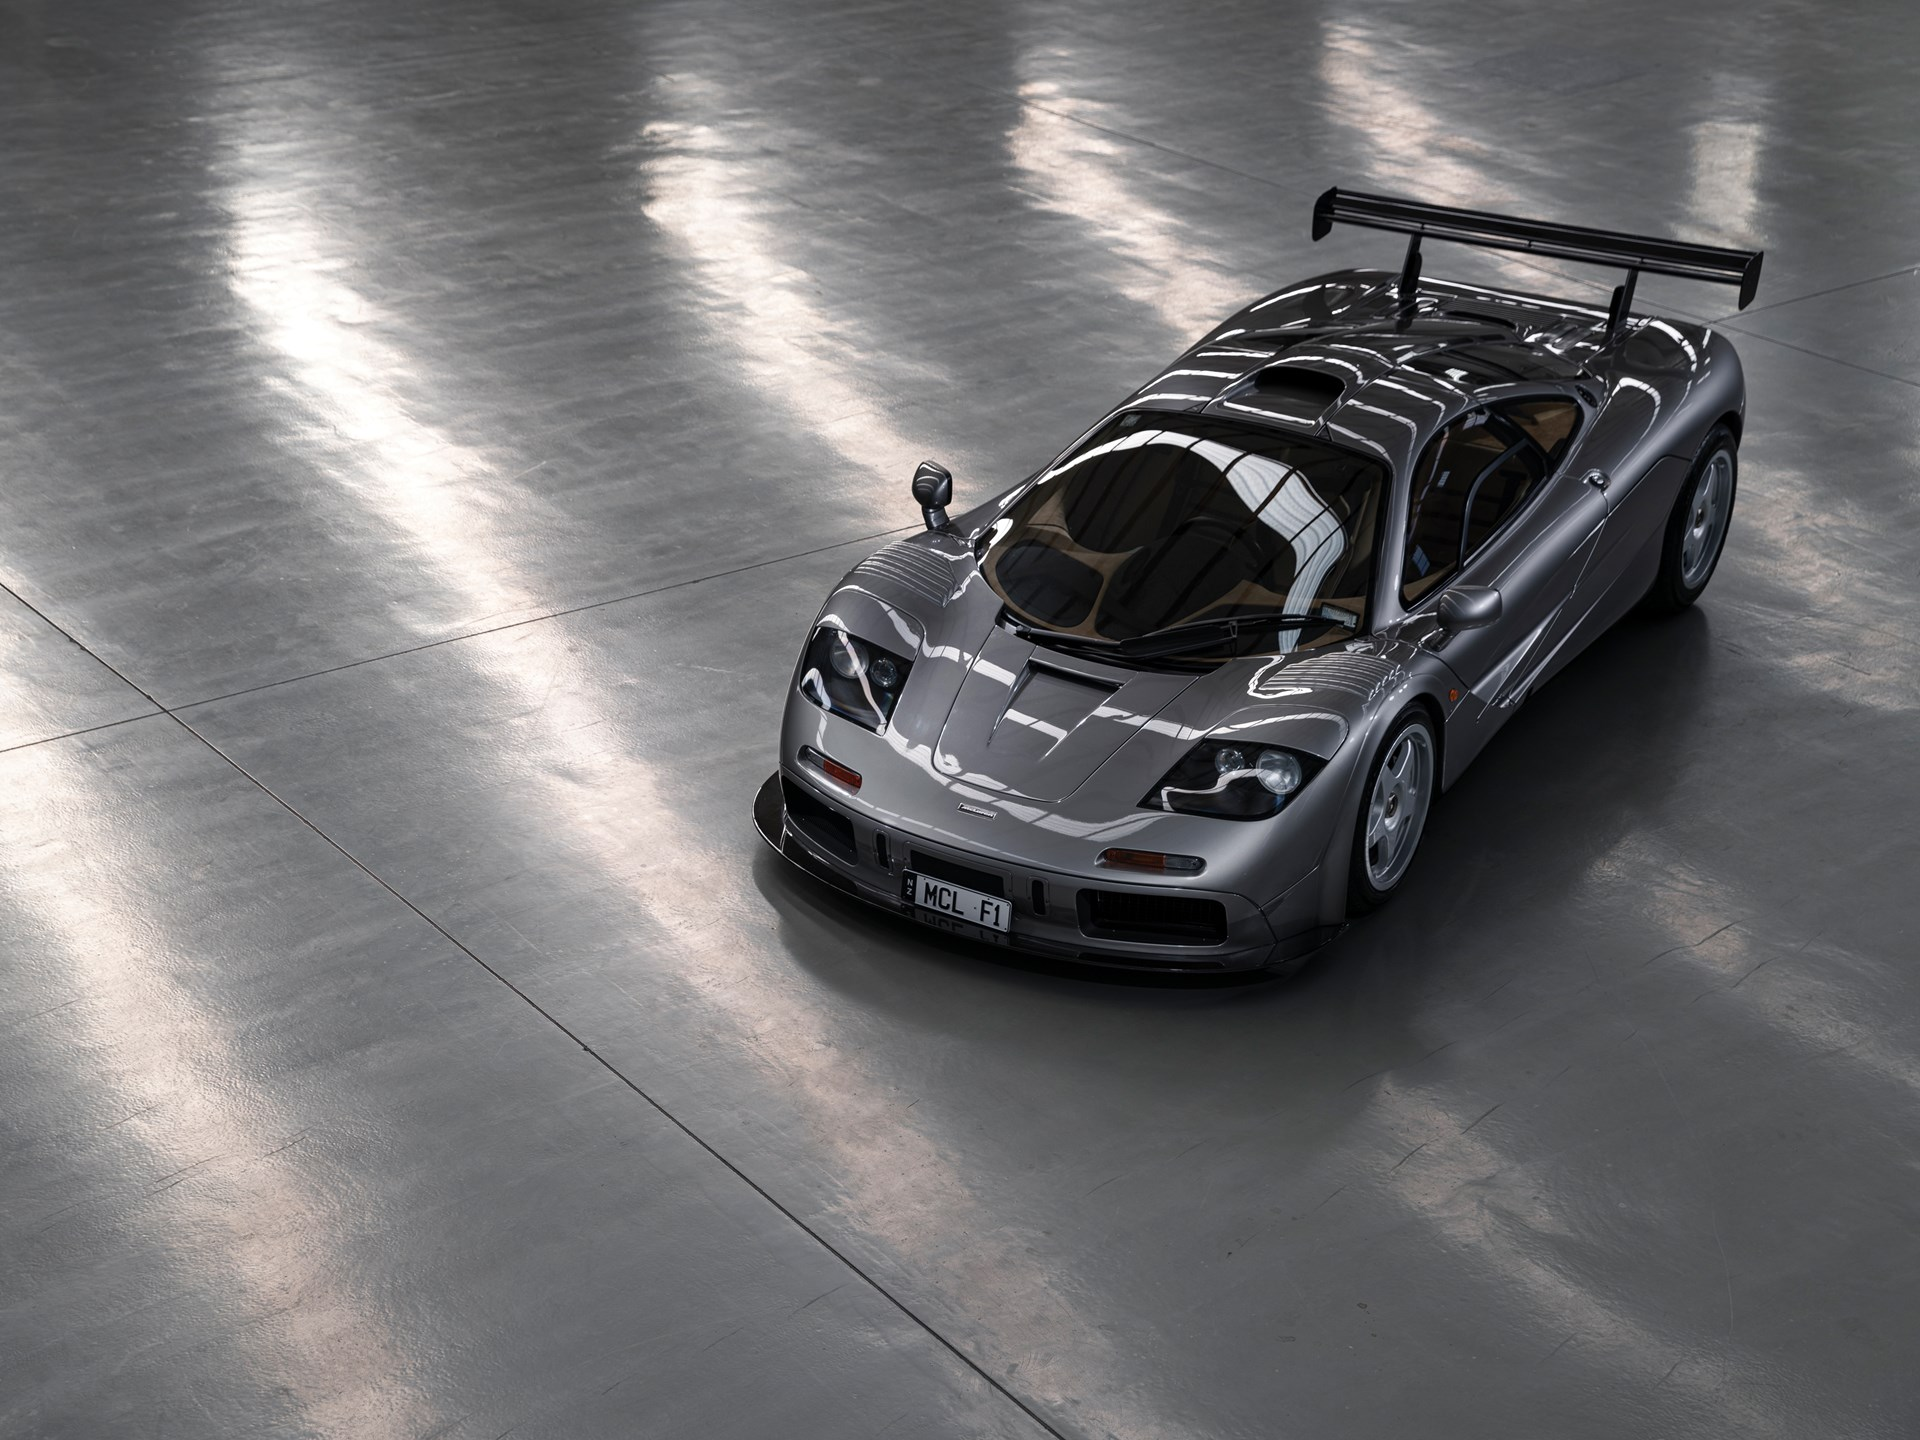 1994 McLaren F1 'LM-Specification' overhead